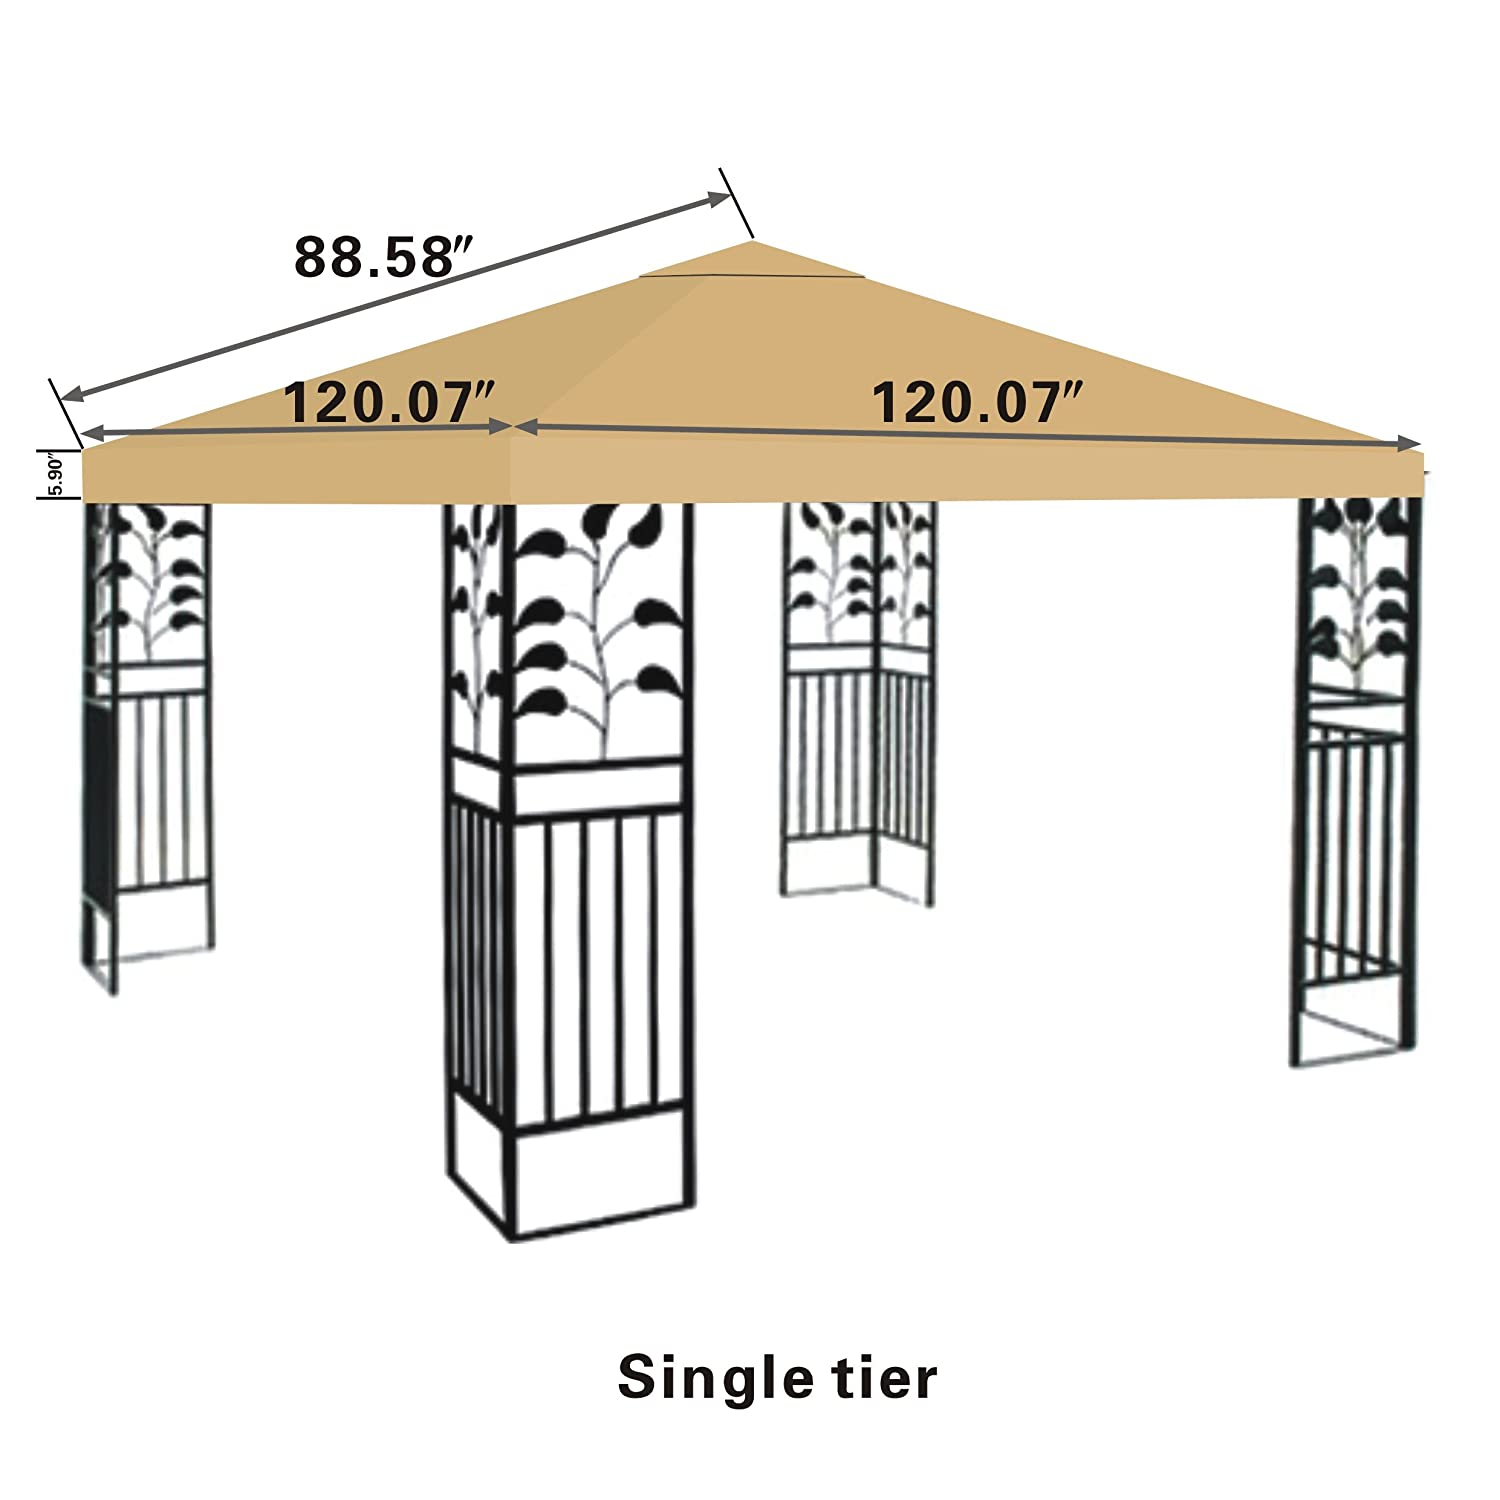 Amazon.com  STRONG CAMEL Replacement 10u0027X10u0027gazebo canopy top patio pavilion cover sunshade plyester single tier-BEIGE  Garden u0026 Outdoor  sc 1 st  Amazon.com & Amazon.com : STRONG CAMEL Replacement 10u0027X10u0027gazebo canopy top ...